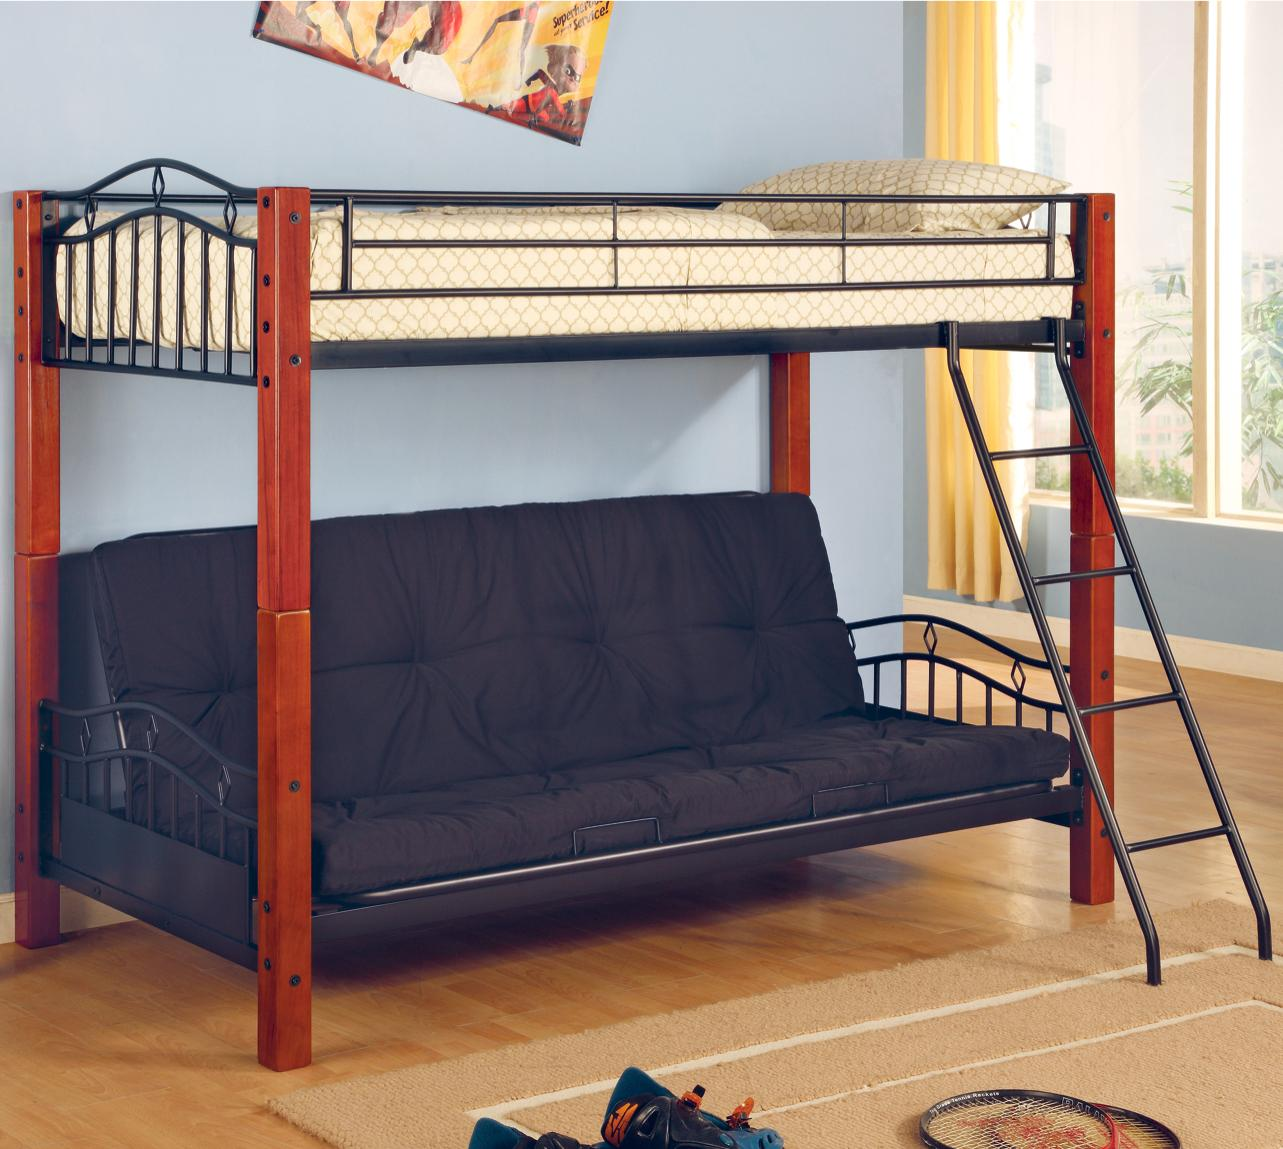 Celina Twin Futon Bunk Bed Coco Furniture Gallery Furnishing Dreams